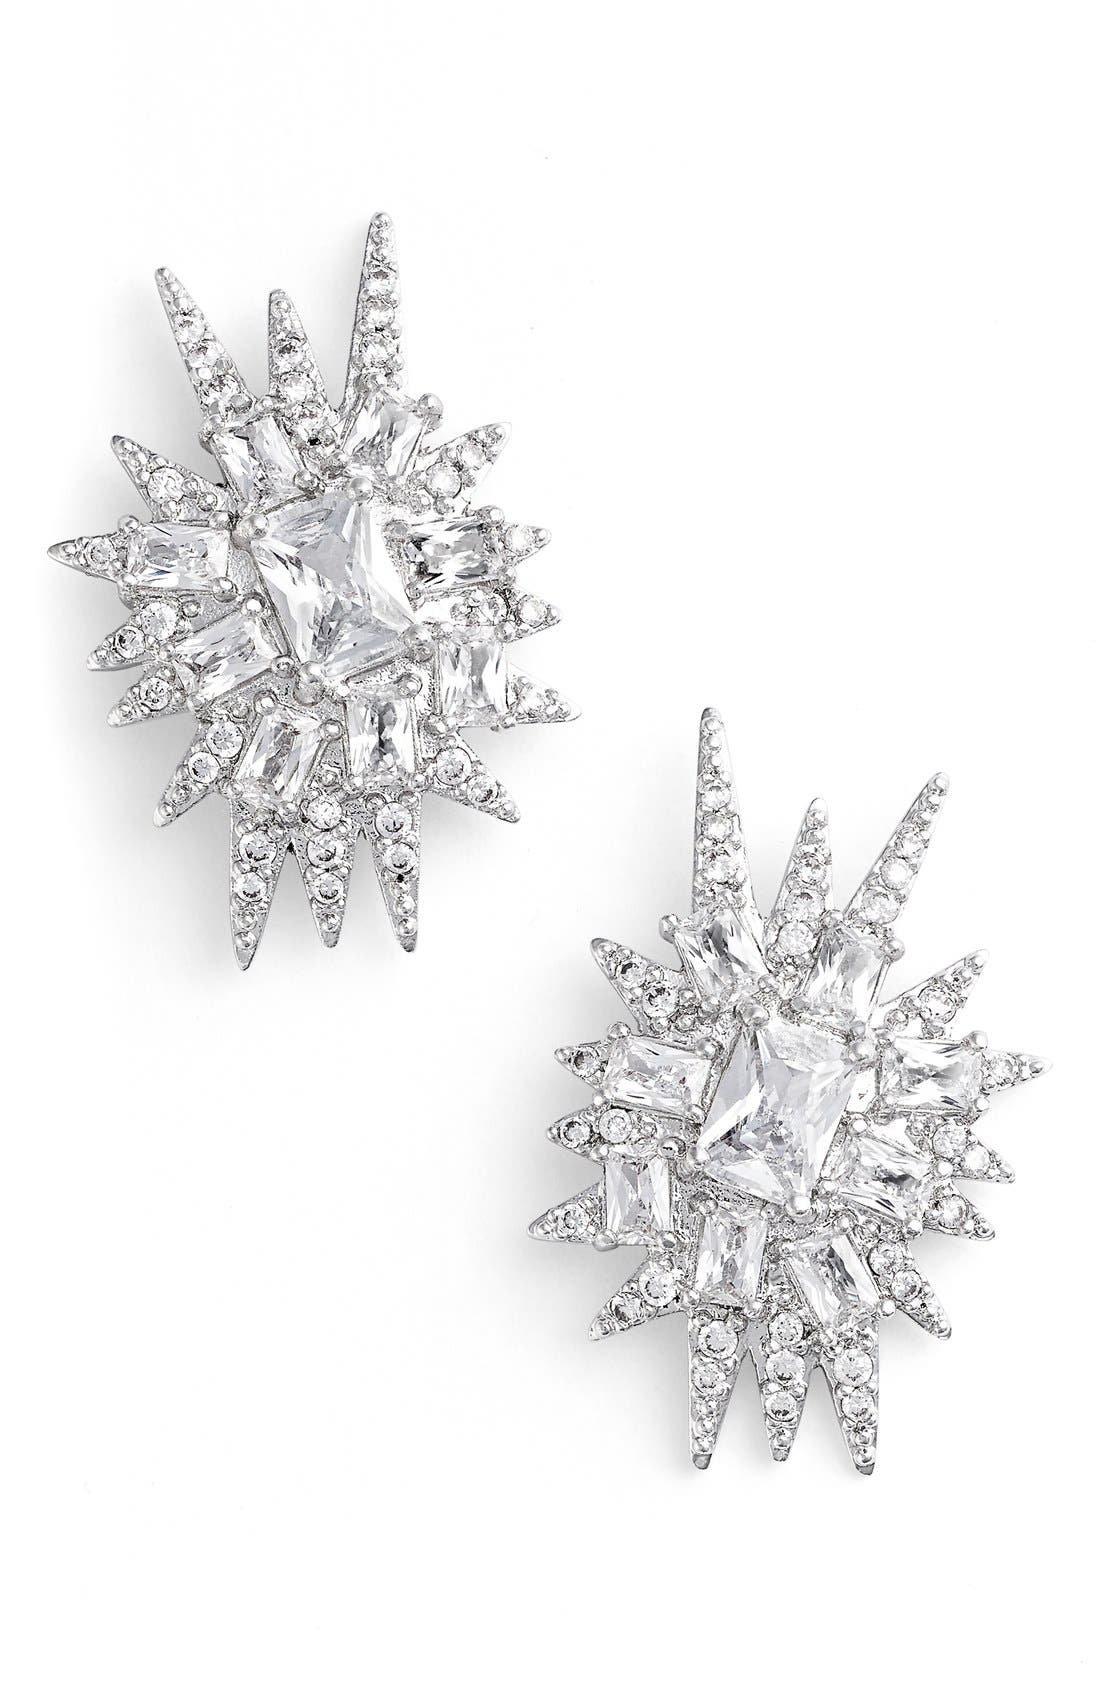 Alternate Image 1 Selected - CZ by Kenneth Jay Lane 'Explosion' Cubic Zirconia Stud Earrings